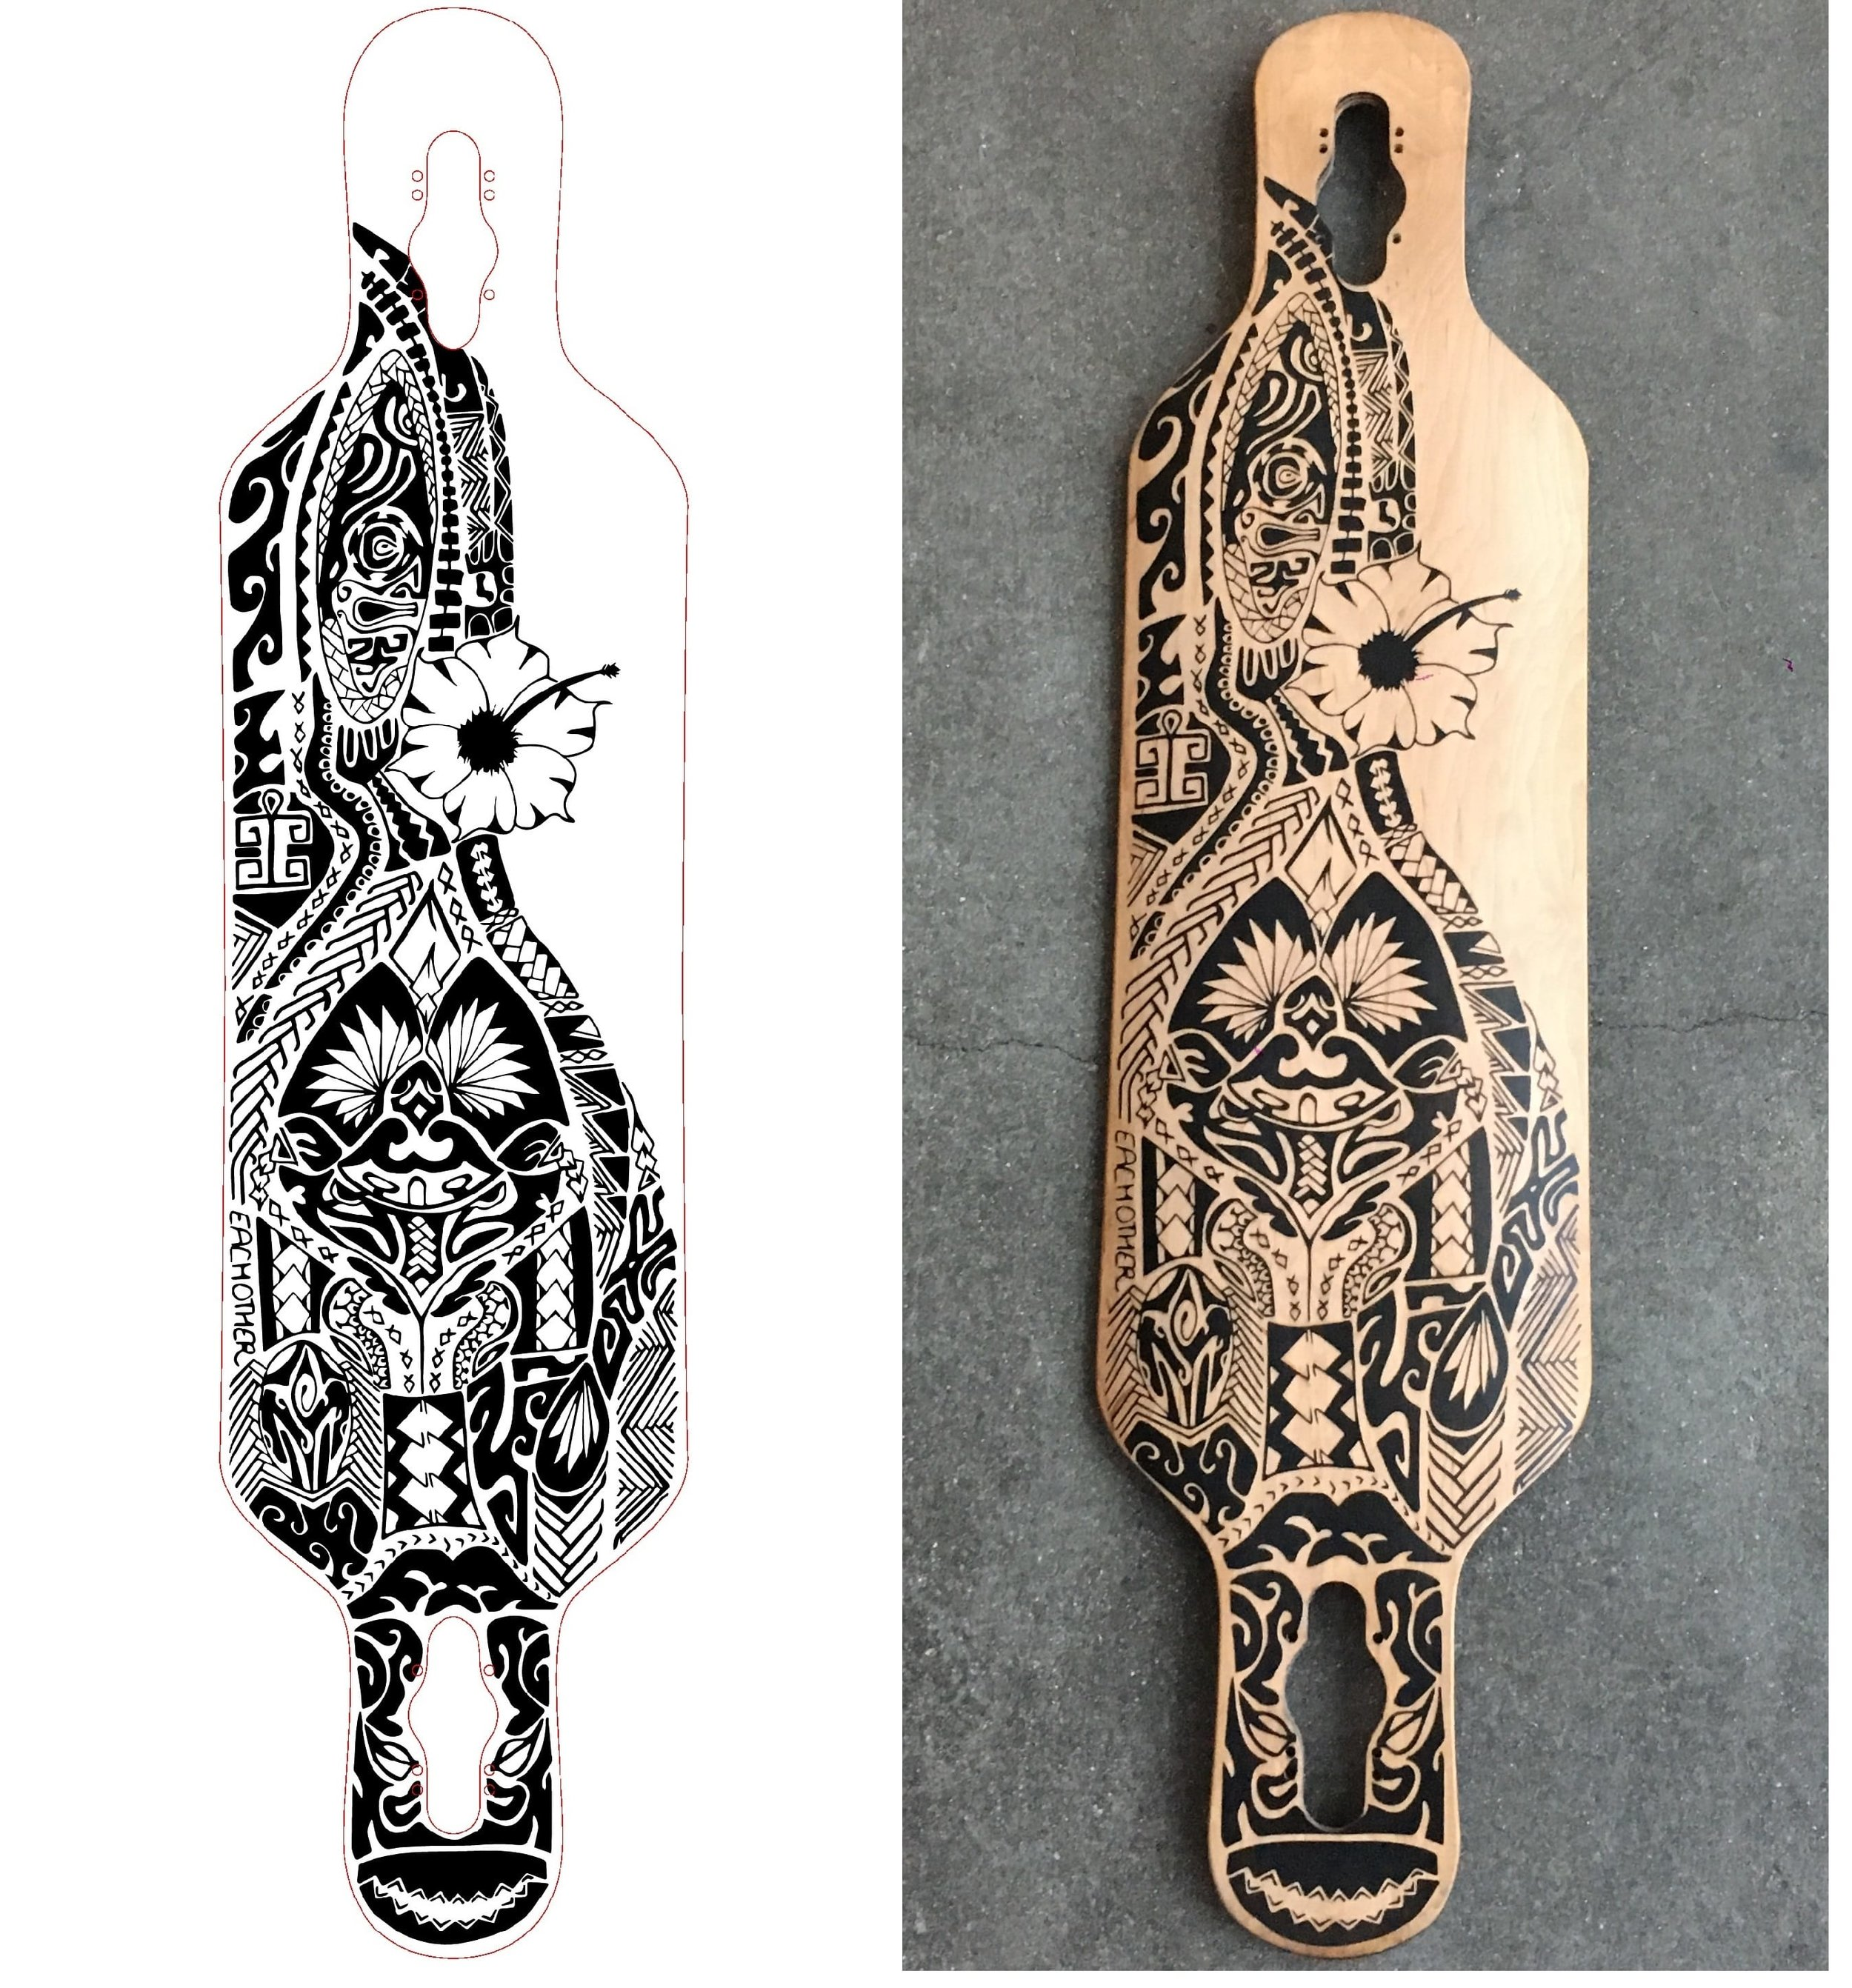 The vectorised drawing from Illustrator and the laser engraved longboard